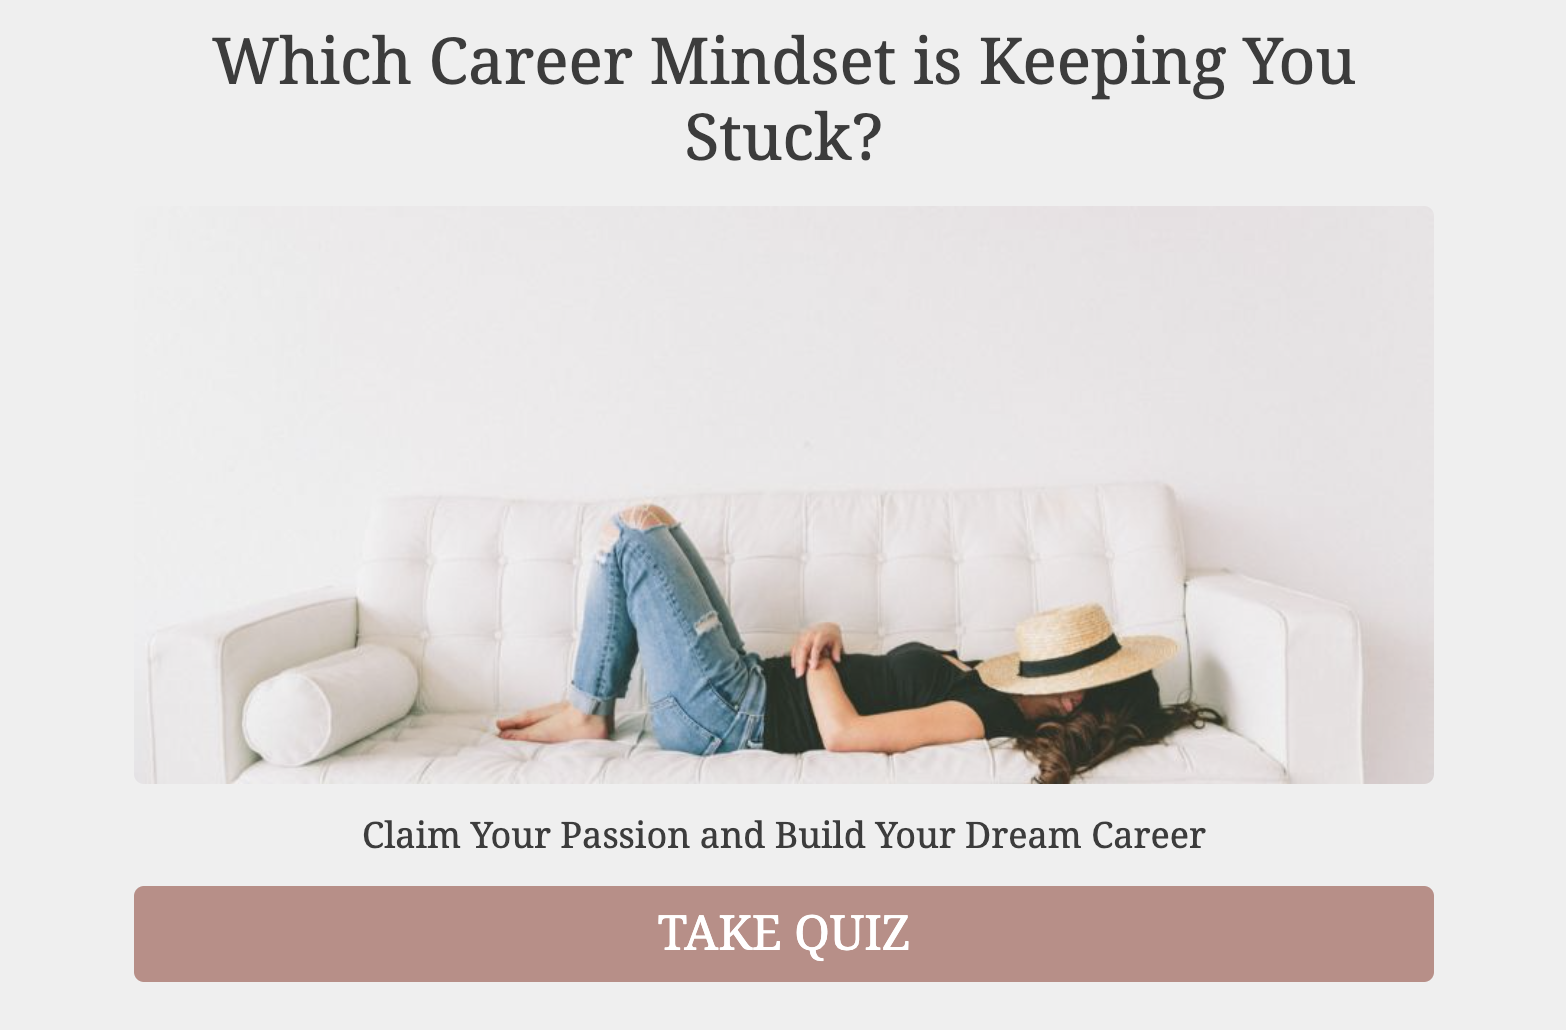 which career mindset is keeping you stuck quiz cover